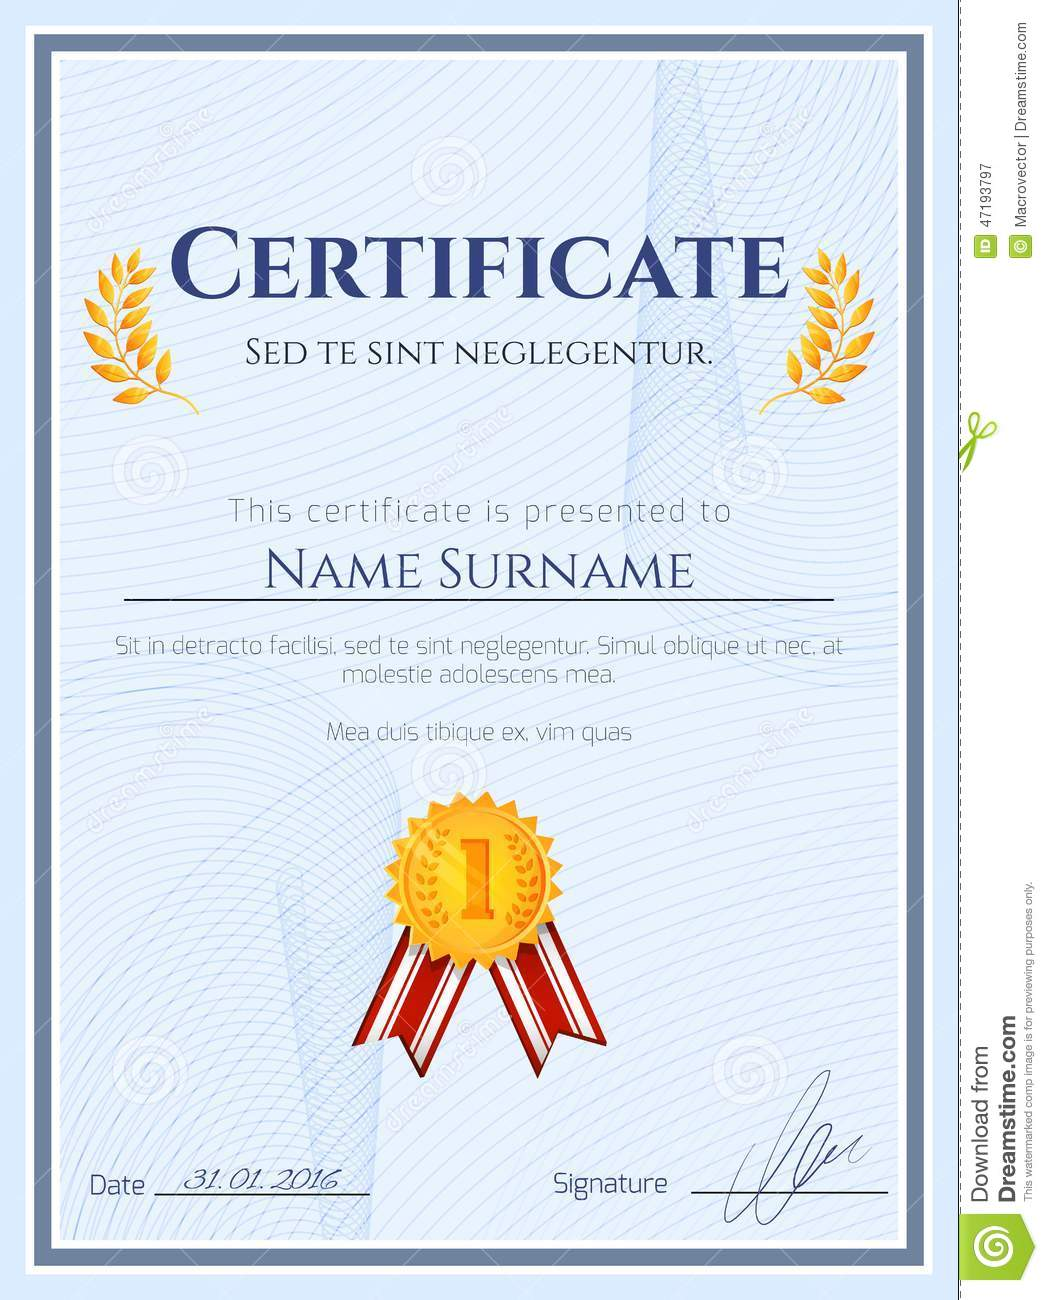 winners certificate template - winner certificate with seal stock vector illustration